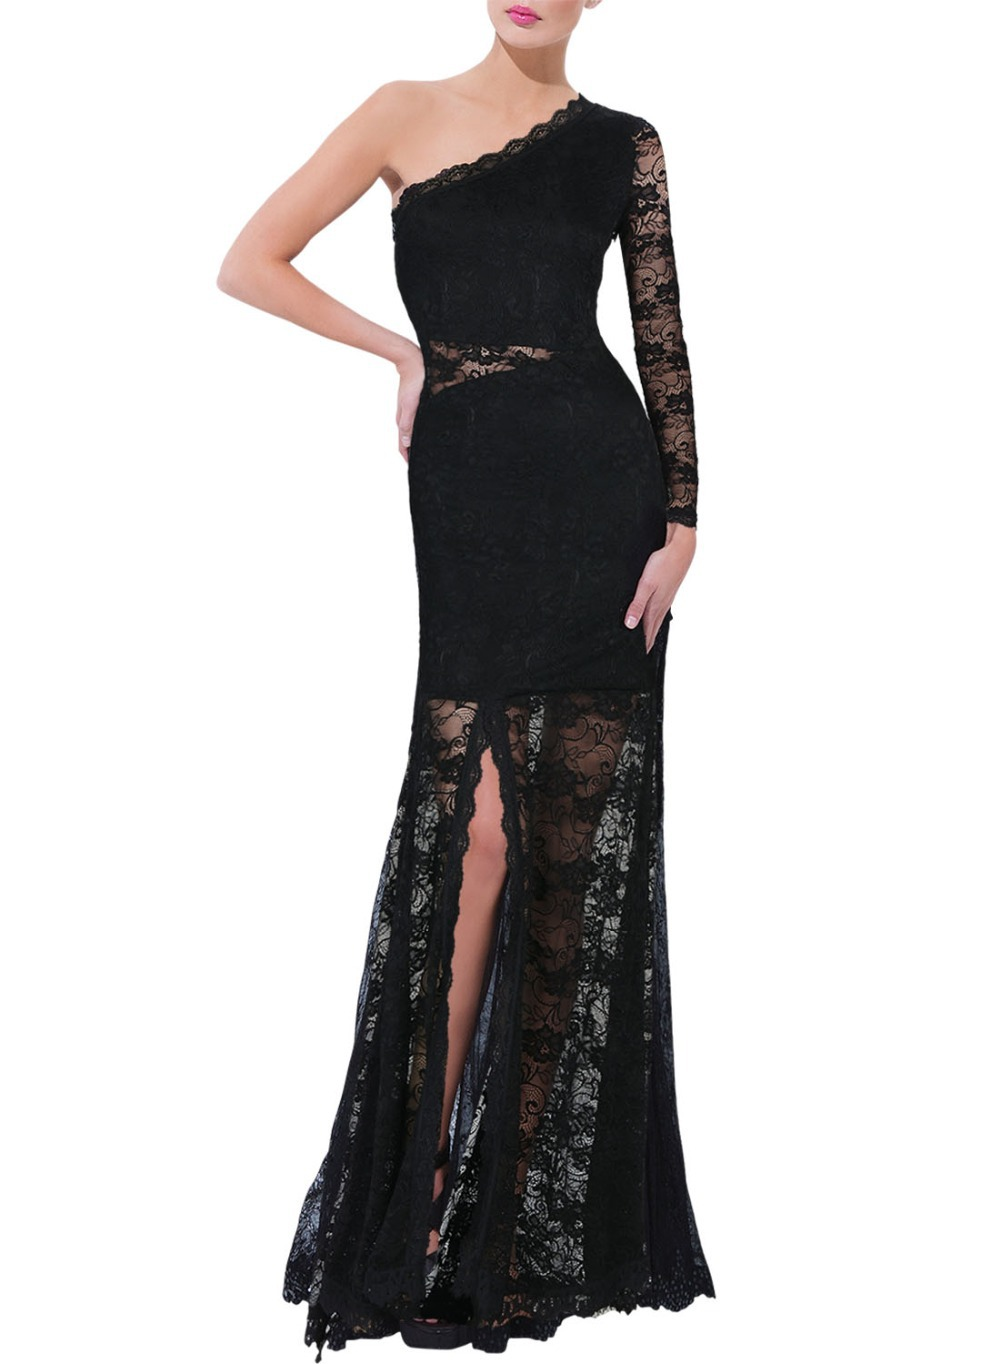 One Shoulder Prom Gowns and Single Strap Dresses. One shoulder evening gowns and single strap dresses are all the rage on the red carpet. If you're looking to be noticed without having to shout, wear a one shoulder or single strap rusticzcountrysstylexhomedecor.tk cheap one shoulder designer dresses give you a seductive, yet sophisticated look without breaking the bank.